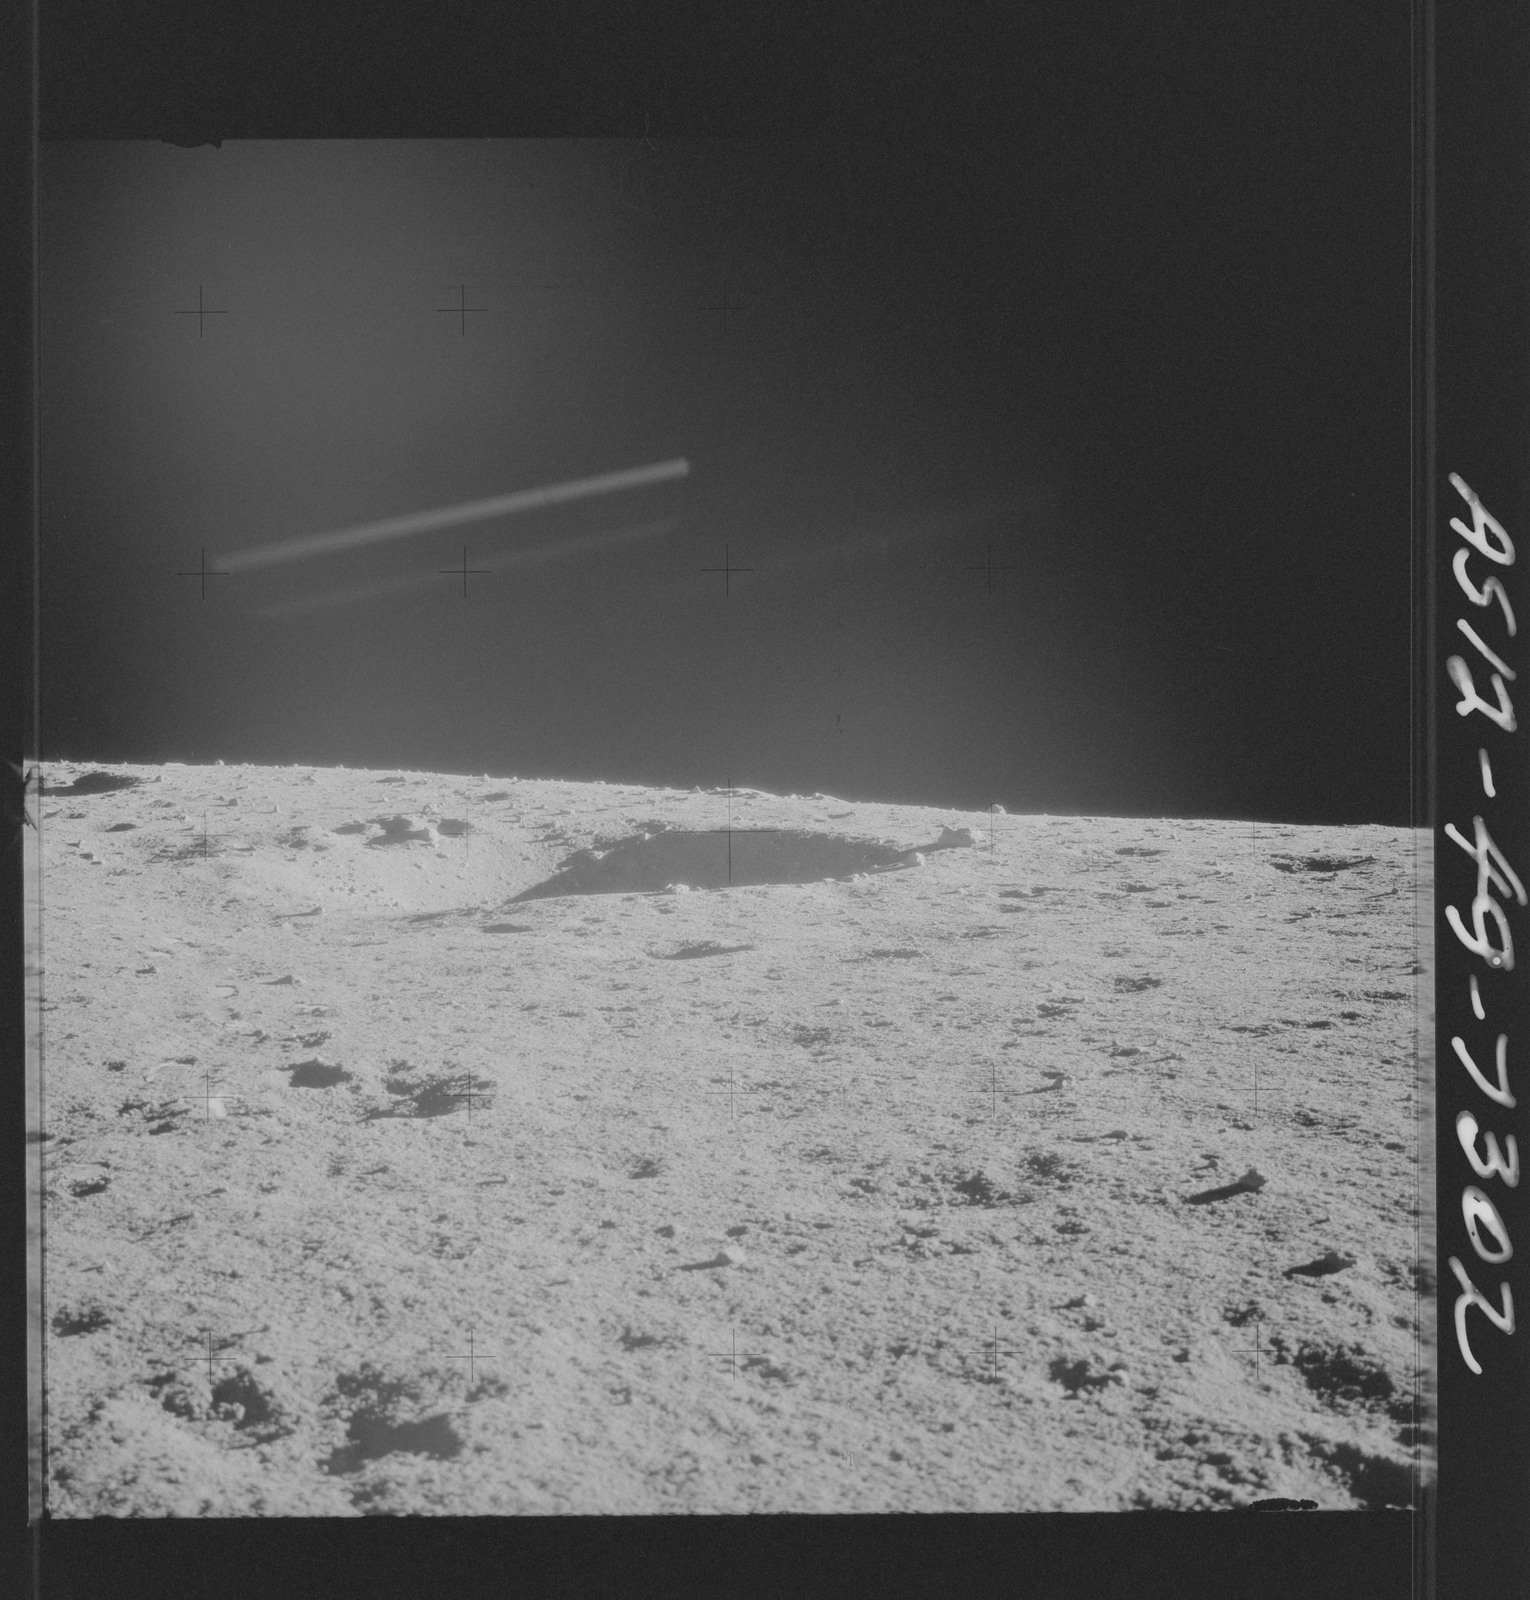 AS12-49-7302 - Apollo 12 - Apollo 12 Mission image  - View of the Lunar terrain